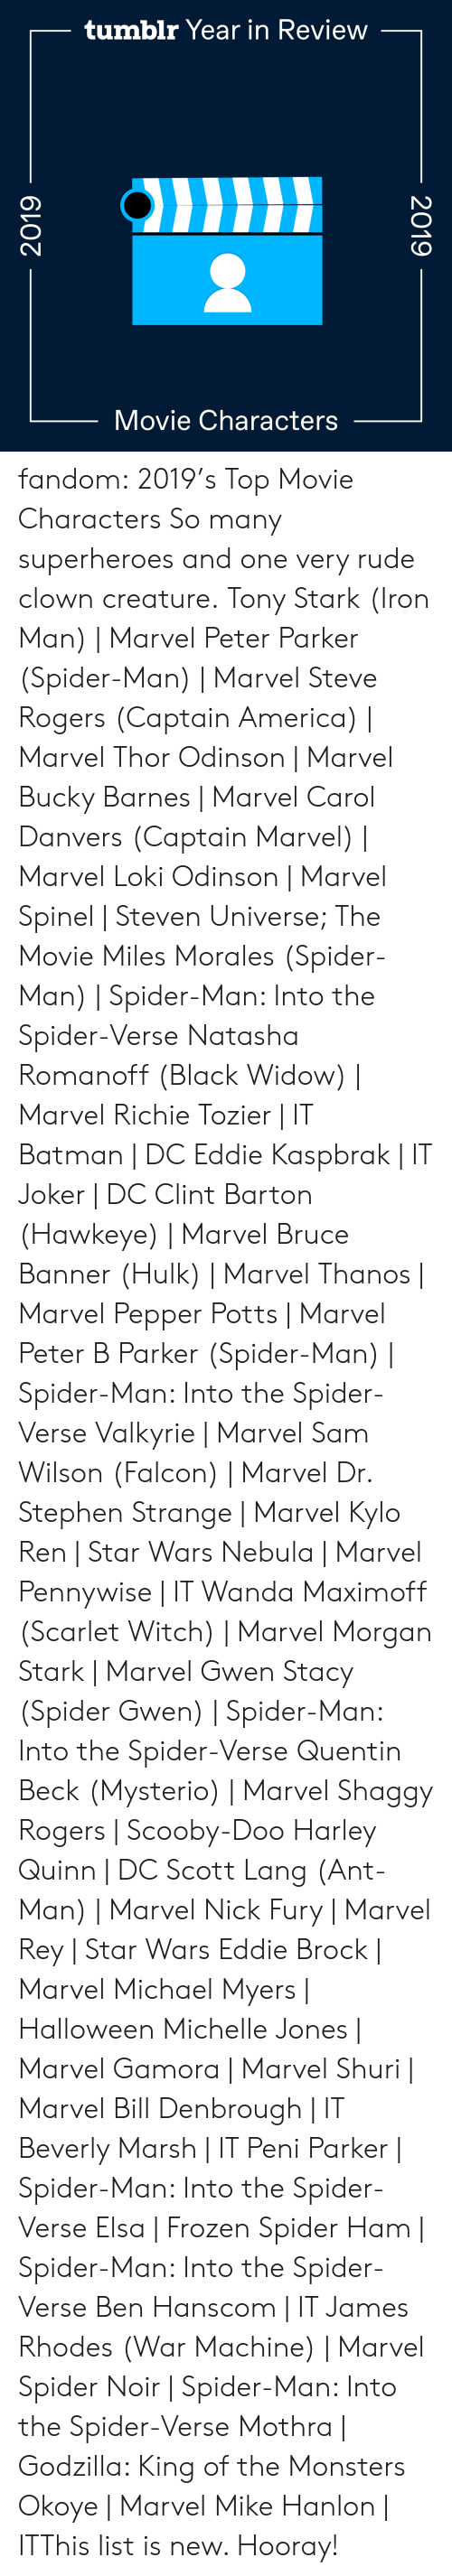 Nick: tumblr Year in Review  Movie Characters  2019  2019 fandom:  2019's Top Movie Characters  So many superheroes and one very rude clown creature.  Tony Stark (Iron Man) | Marvel  Peter Parker (Spider-Man) | Marvel  Steve Rogers (Captain America) | Marvel  Thor Odinson | Marvel  Bucky Barnes | Marvel  Carol Danvers (Captain Marvel) | Marvel  Loki Odinson | Marvel  Spinel | Steven Universe; The Movie  Miles Morales (Spider-Man) | Spider-Man: Into the Spider-Verse  Natasha Romanoff (Black Widow) | Marvel  Richie Tozier | IT  Batman | DC  Eddie Kaspbrak | IT  Joker | DC  Clint Barton (Hawkeye) | Marvel  Bruce Banner (Hulk) | Marvel  Thanos | Marvel  Pepper Potts | Marvel  Peter B Parker (Spider-Man) | Spider-Man: Into the Spider-Verse  Valkyrie | Marvel  Sam Wilson (Falcon) | Marvel  Dr. Stephen Strange | Marvel  Kylo Ren | Star Wars  Nebula | Marvel  Pennywise | IT  Wanda Maximoff (Scarlet Witch) | Marvel  Morgan Stark | Marvel  Gwen Stacy (Spider Gwen) | Spider-Man: Into the Spider-Verse  Quentin Beck (Mysterio) | Marvel  Shaggy Rogers | Scooby-Doo  Harley Quinn | DC  Scott Lang (Ant-Man) | Marvel  Nick Fury | Marvel  Rey | Star Wars  Eddie Brock | Marvel  Michael Myers | Halloween  Michelle Jones | Marvel  Gamora | Marvel  Shuri | Marvel  Bill Denbrough | IT  Beverly Marsh | IT  Peni Parker | Spider-Man: Into the Spider-Verse  Elsa | Frozen  Spider Ham | Spider-Man: Into the Spider-Verse  Ben Hanscom | IT  James Rhodes (War Machine) | Marvel  Spider Noir | Spider-Man: Into the Spider-Verse  Mothra | Godzilla: King of the Monsters  Okoye | Marvel Mike Hanlon | ITThis list is new. Hooray!